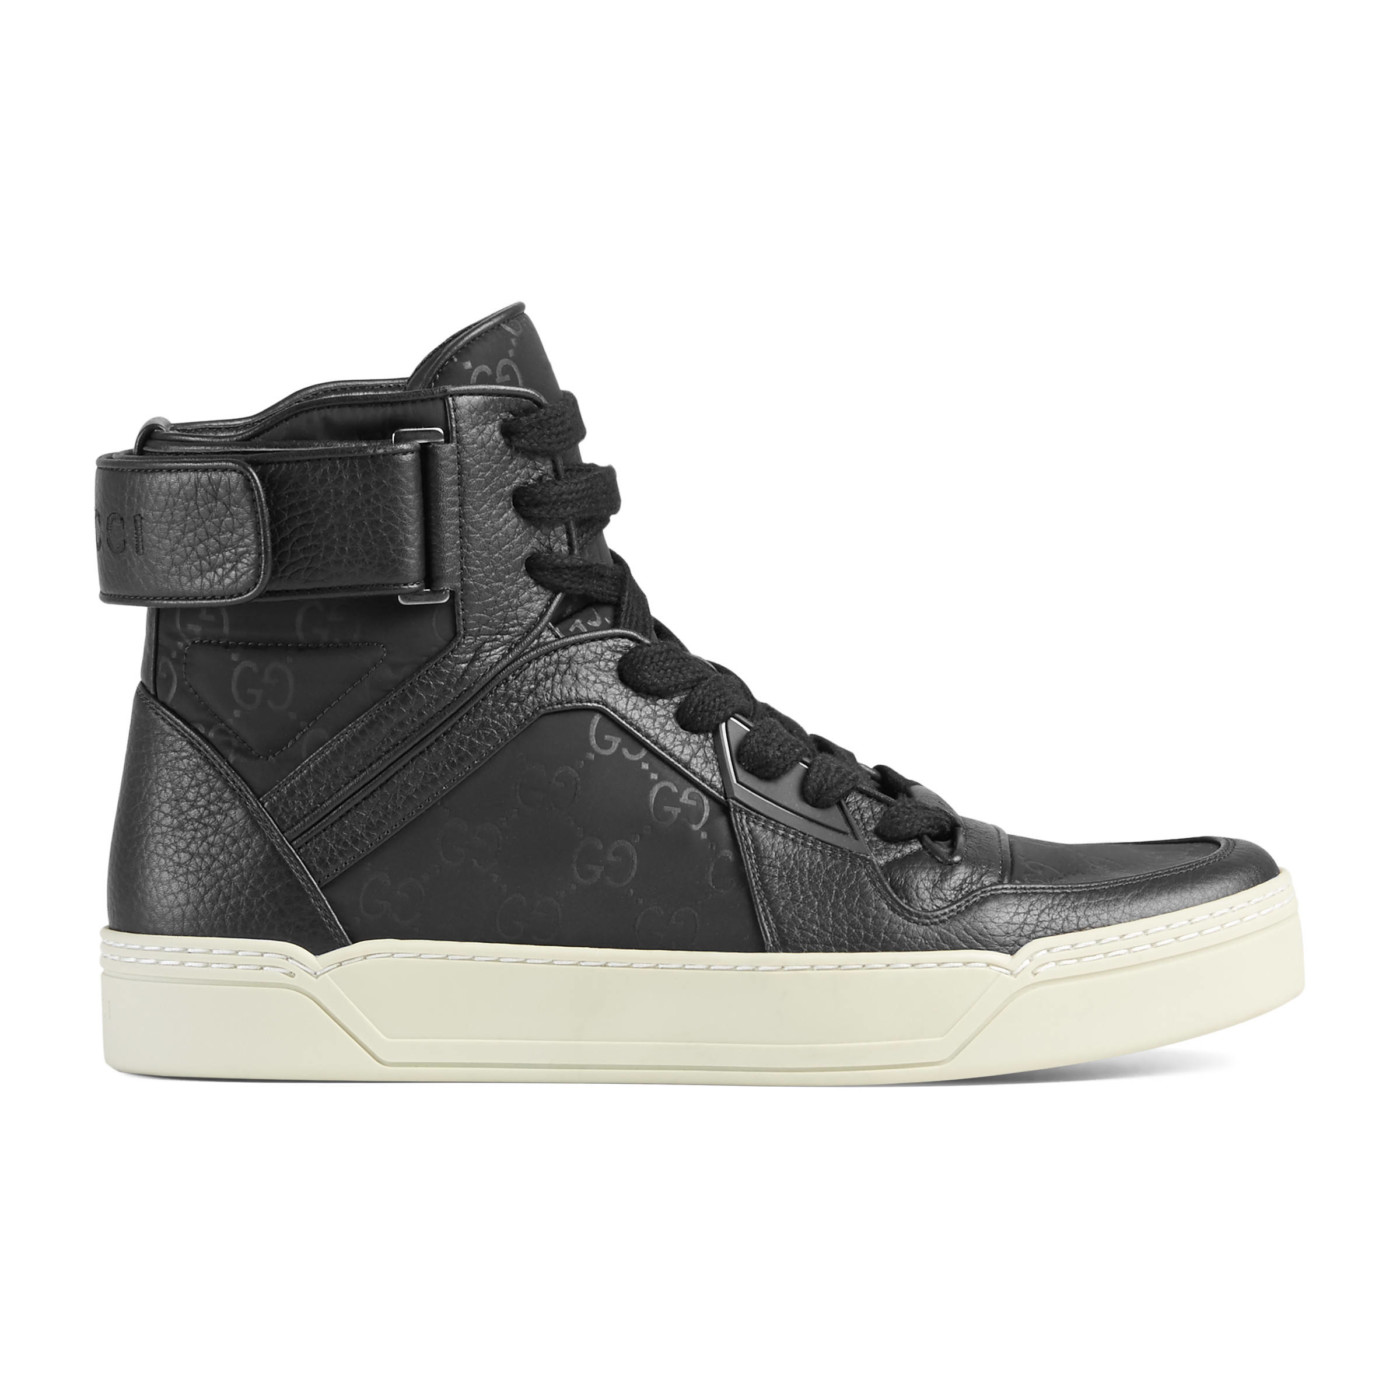 01637ee41 Gucci Men's Black Nylon Leather GG Guccissima High Top Sneakers Shoes